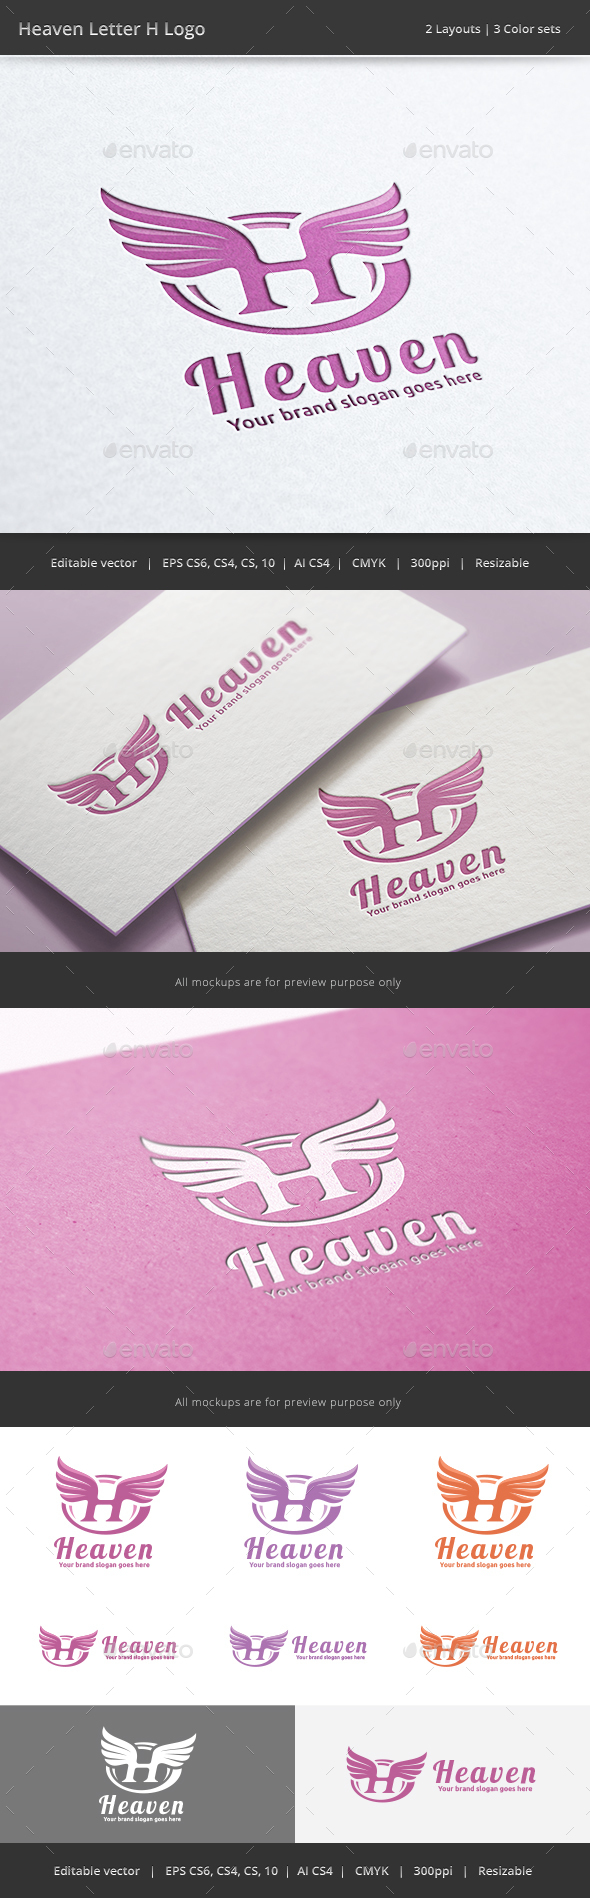 Letter H Graphics, Designs & Templates from GraphicRiver